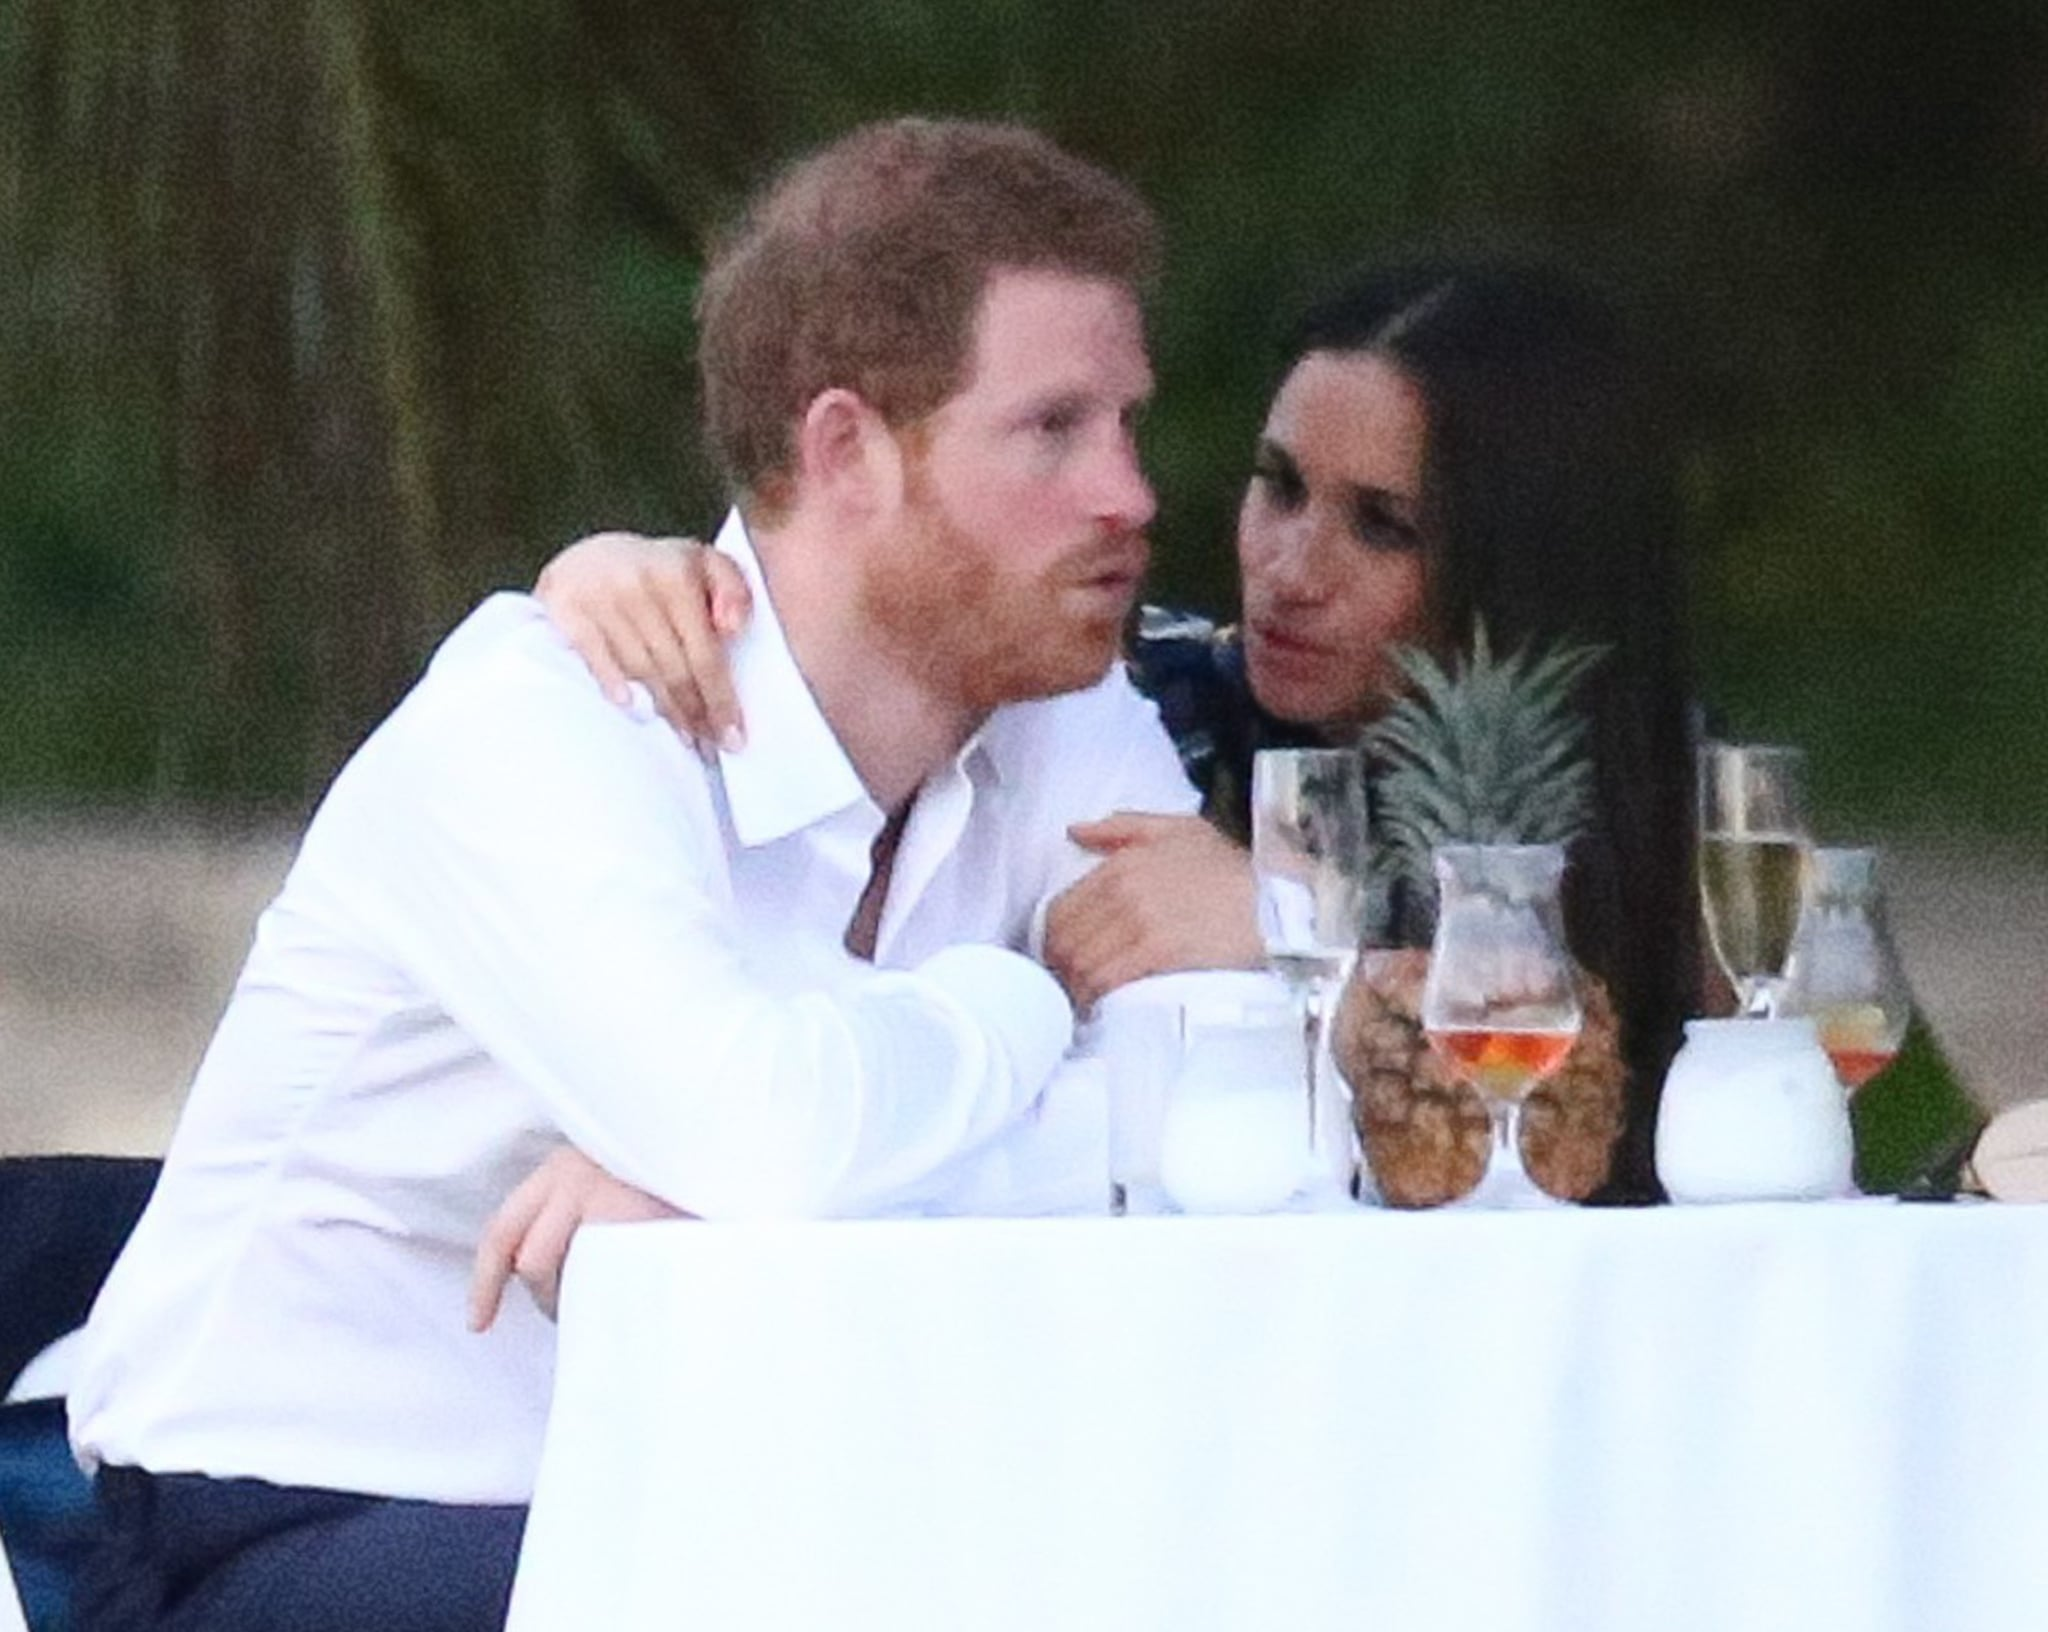 Boyfriend and girlfriend: Prince Harry and Meghan Markle